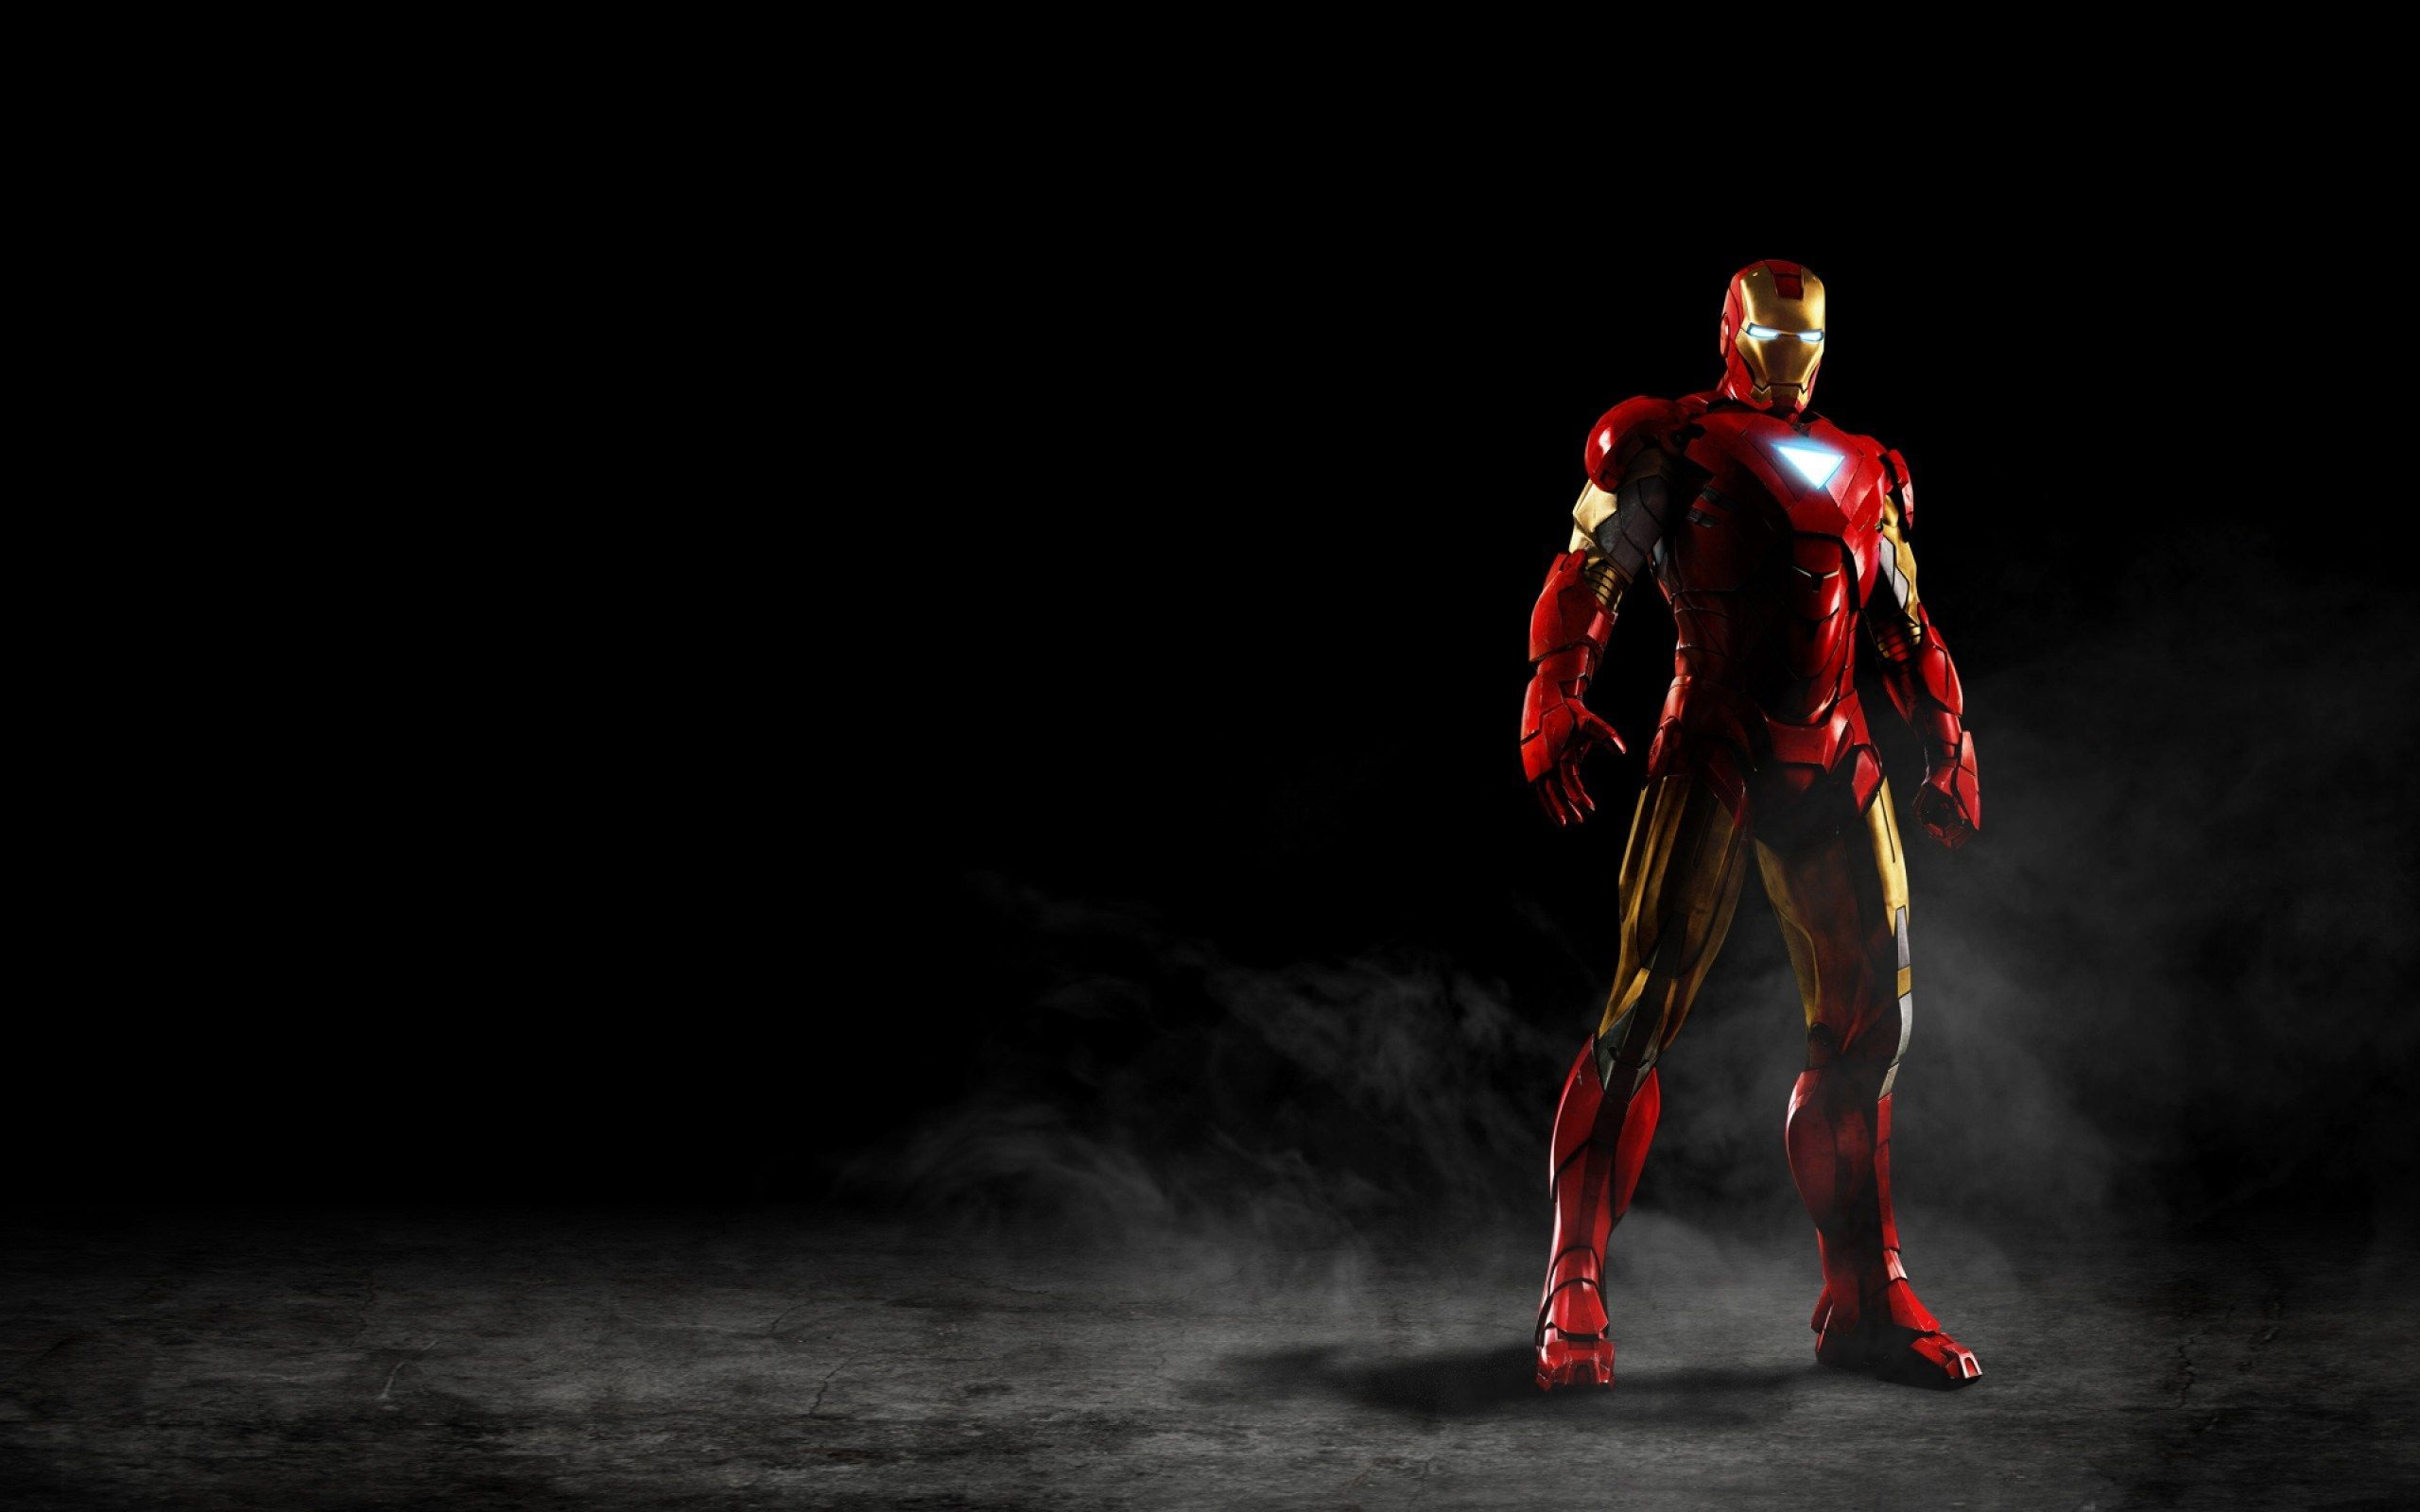 Iron Man Wallpaper Iron Man Hd Wallpaper Iron Man Wallpaper Man Wallpaper